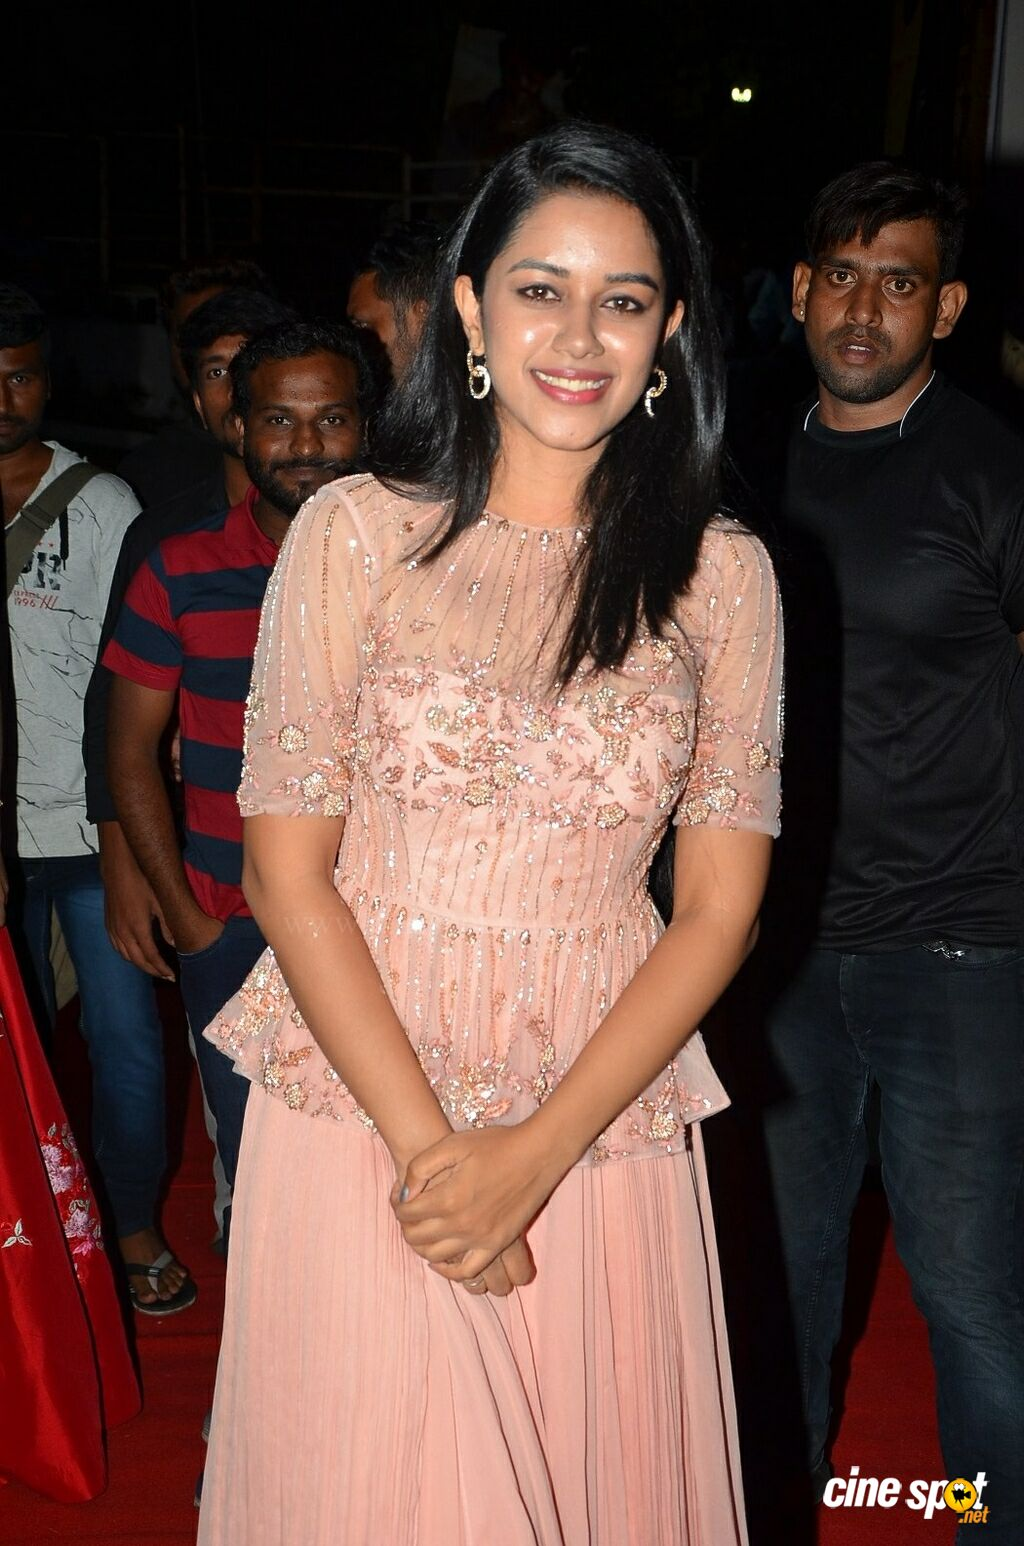 Mirnalini Ravi at Gaddala Konda Ganesh Success Celebrations (1)